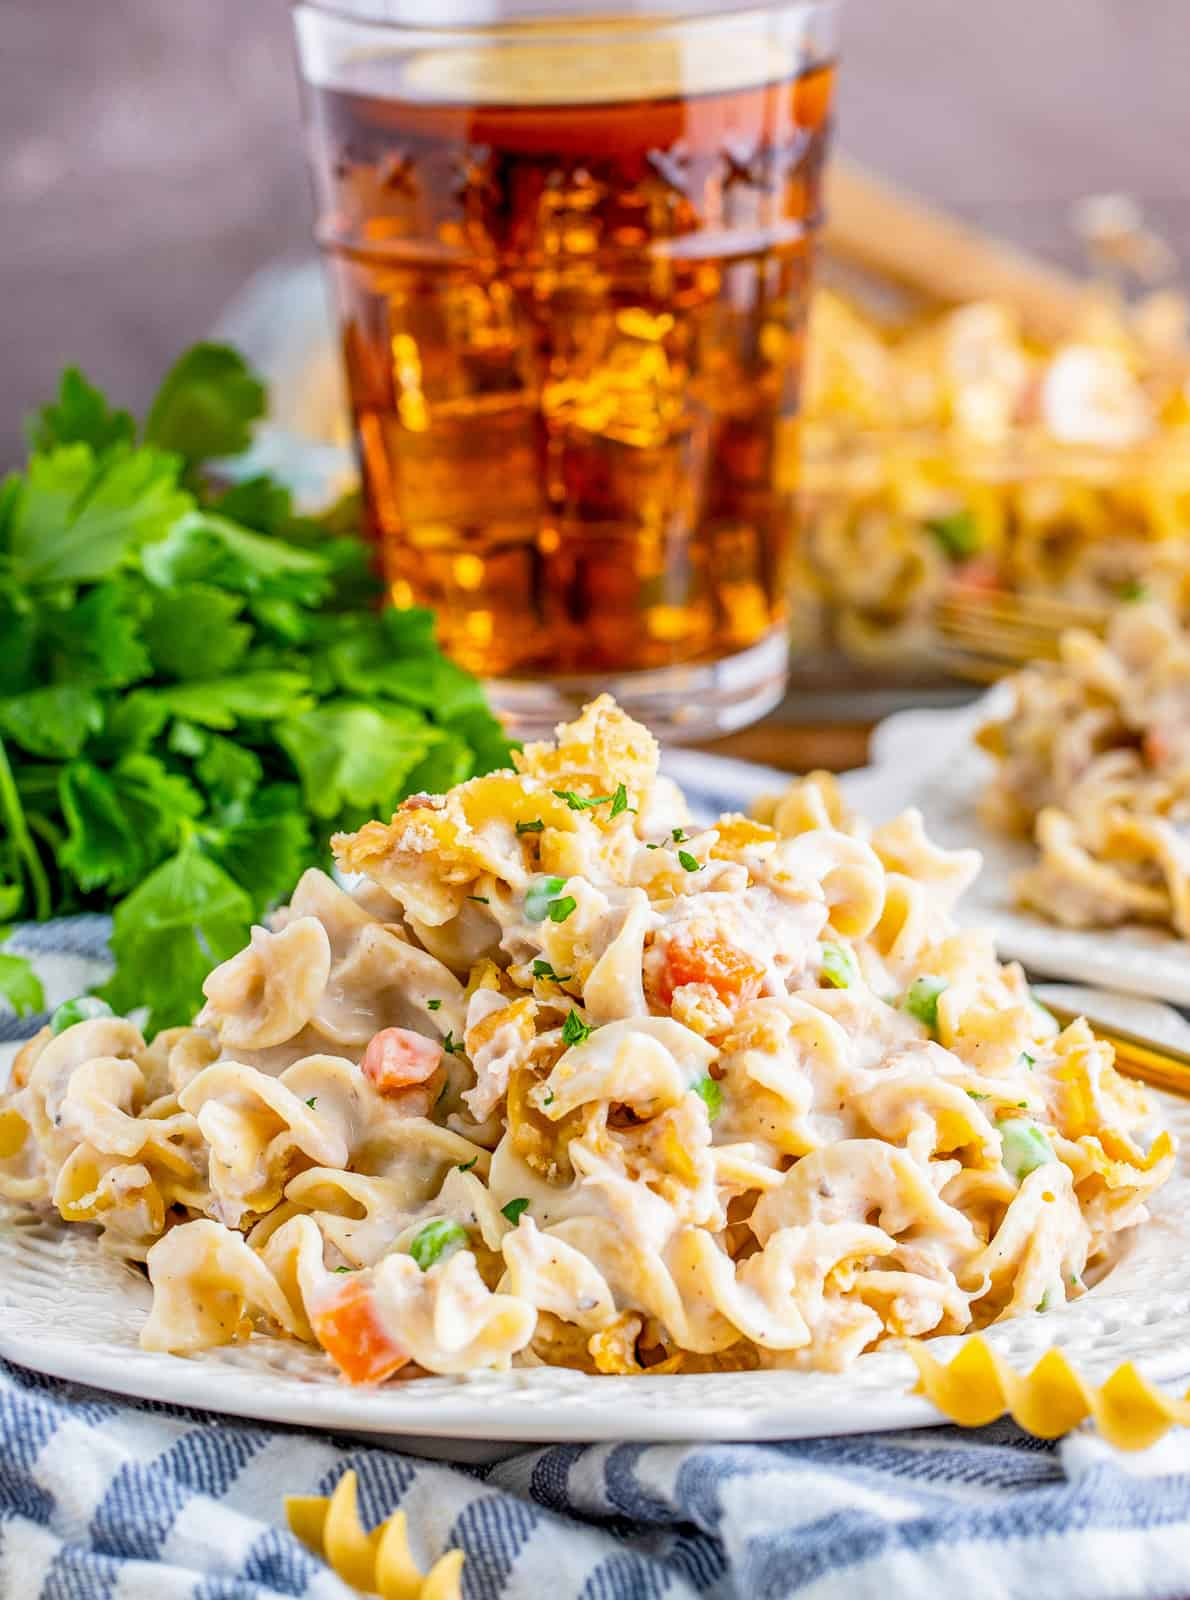 Tuna Noodle Casserole Recipe on white plate with parsley and drink in background.